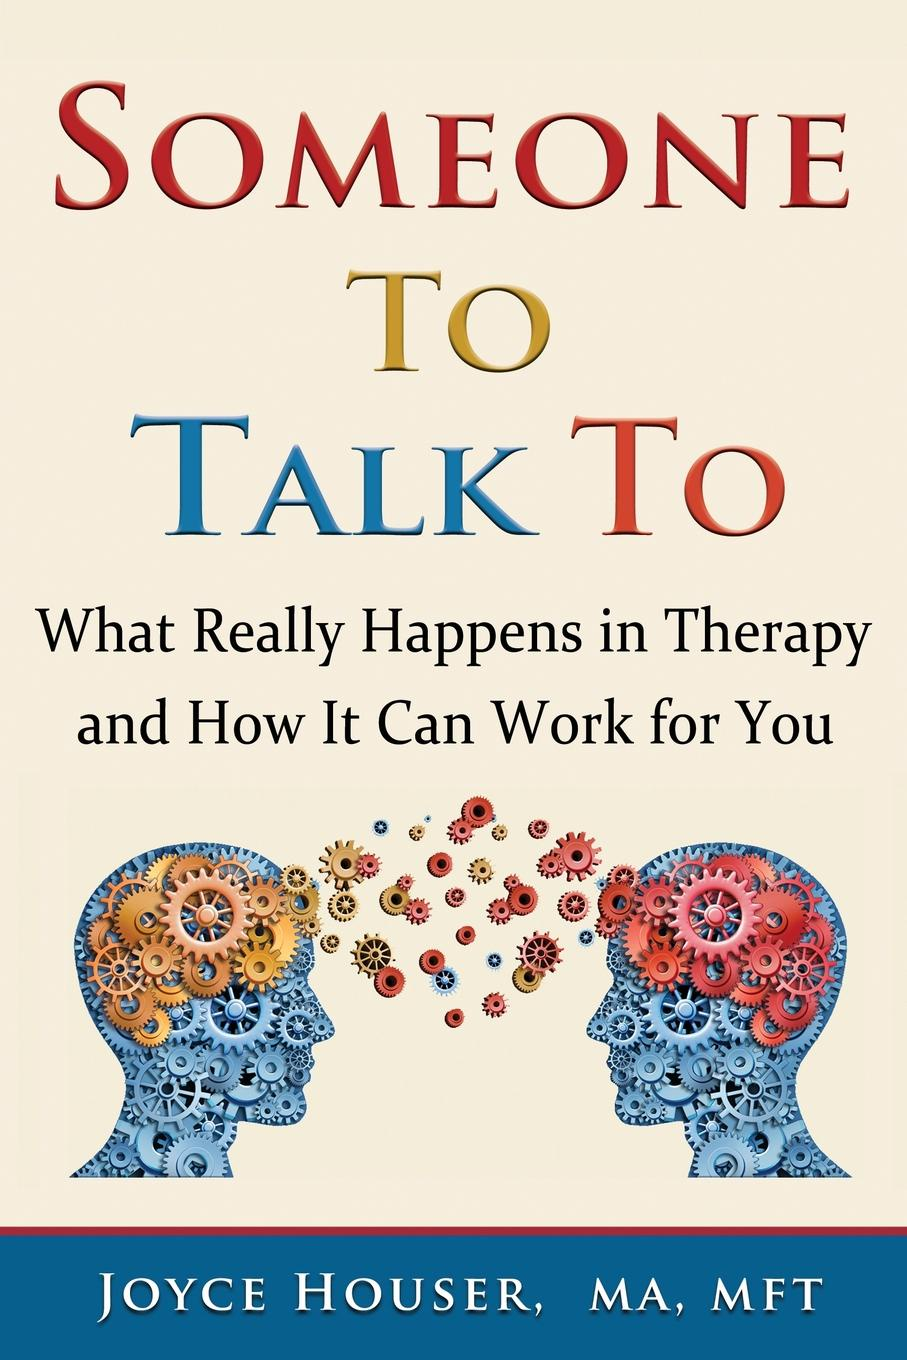 Joyce Houser Someone To Talk To. What Really Happens in Therapy and How It Can Work for You jon mcgregor this isn't the sort of thing that happens to someone like you